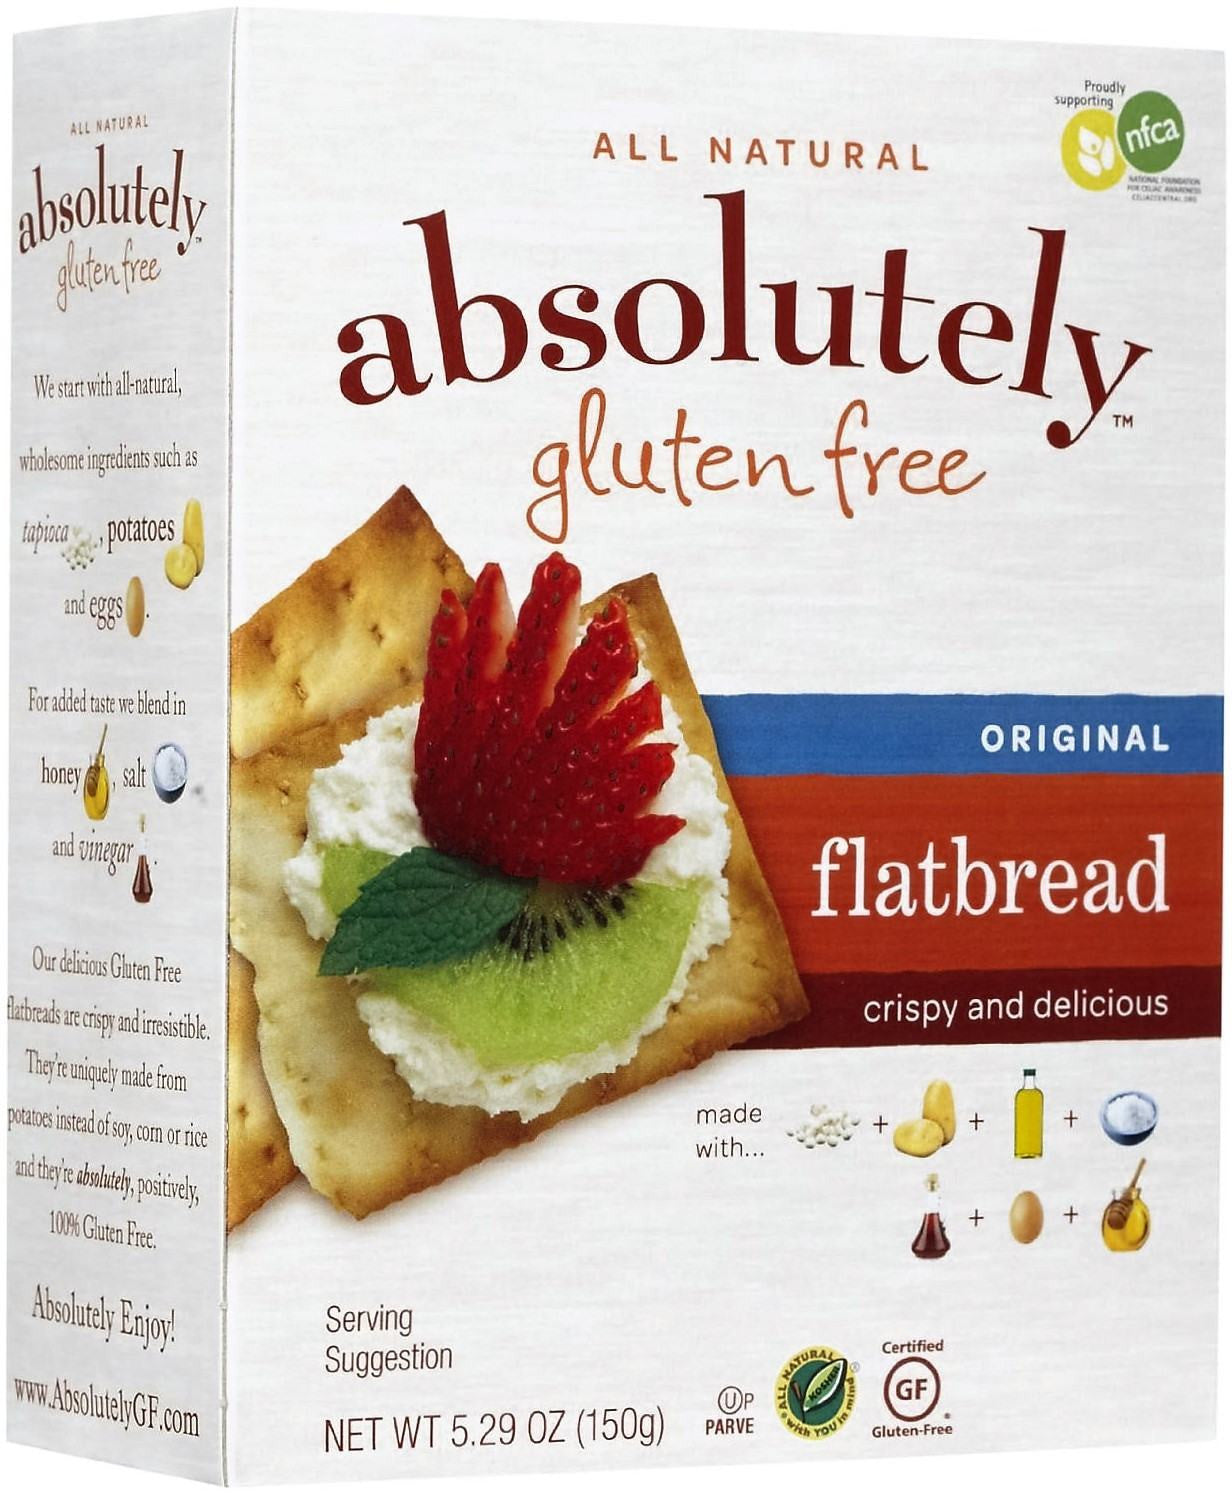 All Natural Absolutely Gluten Free Flatbread